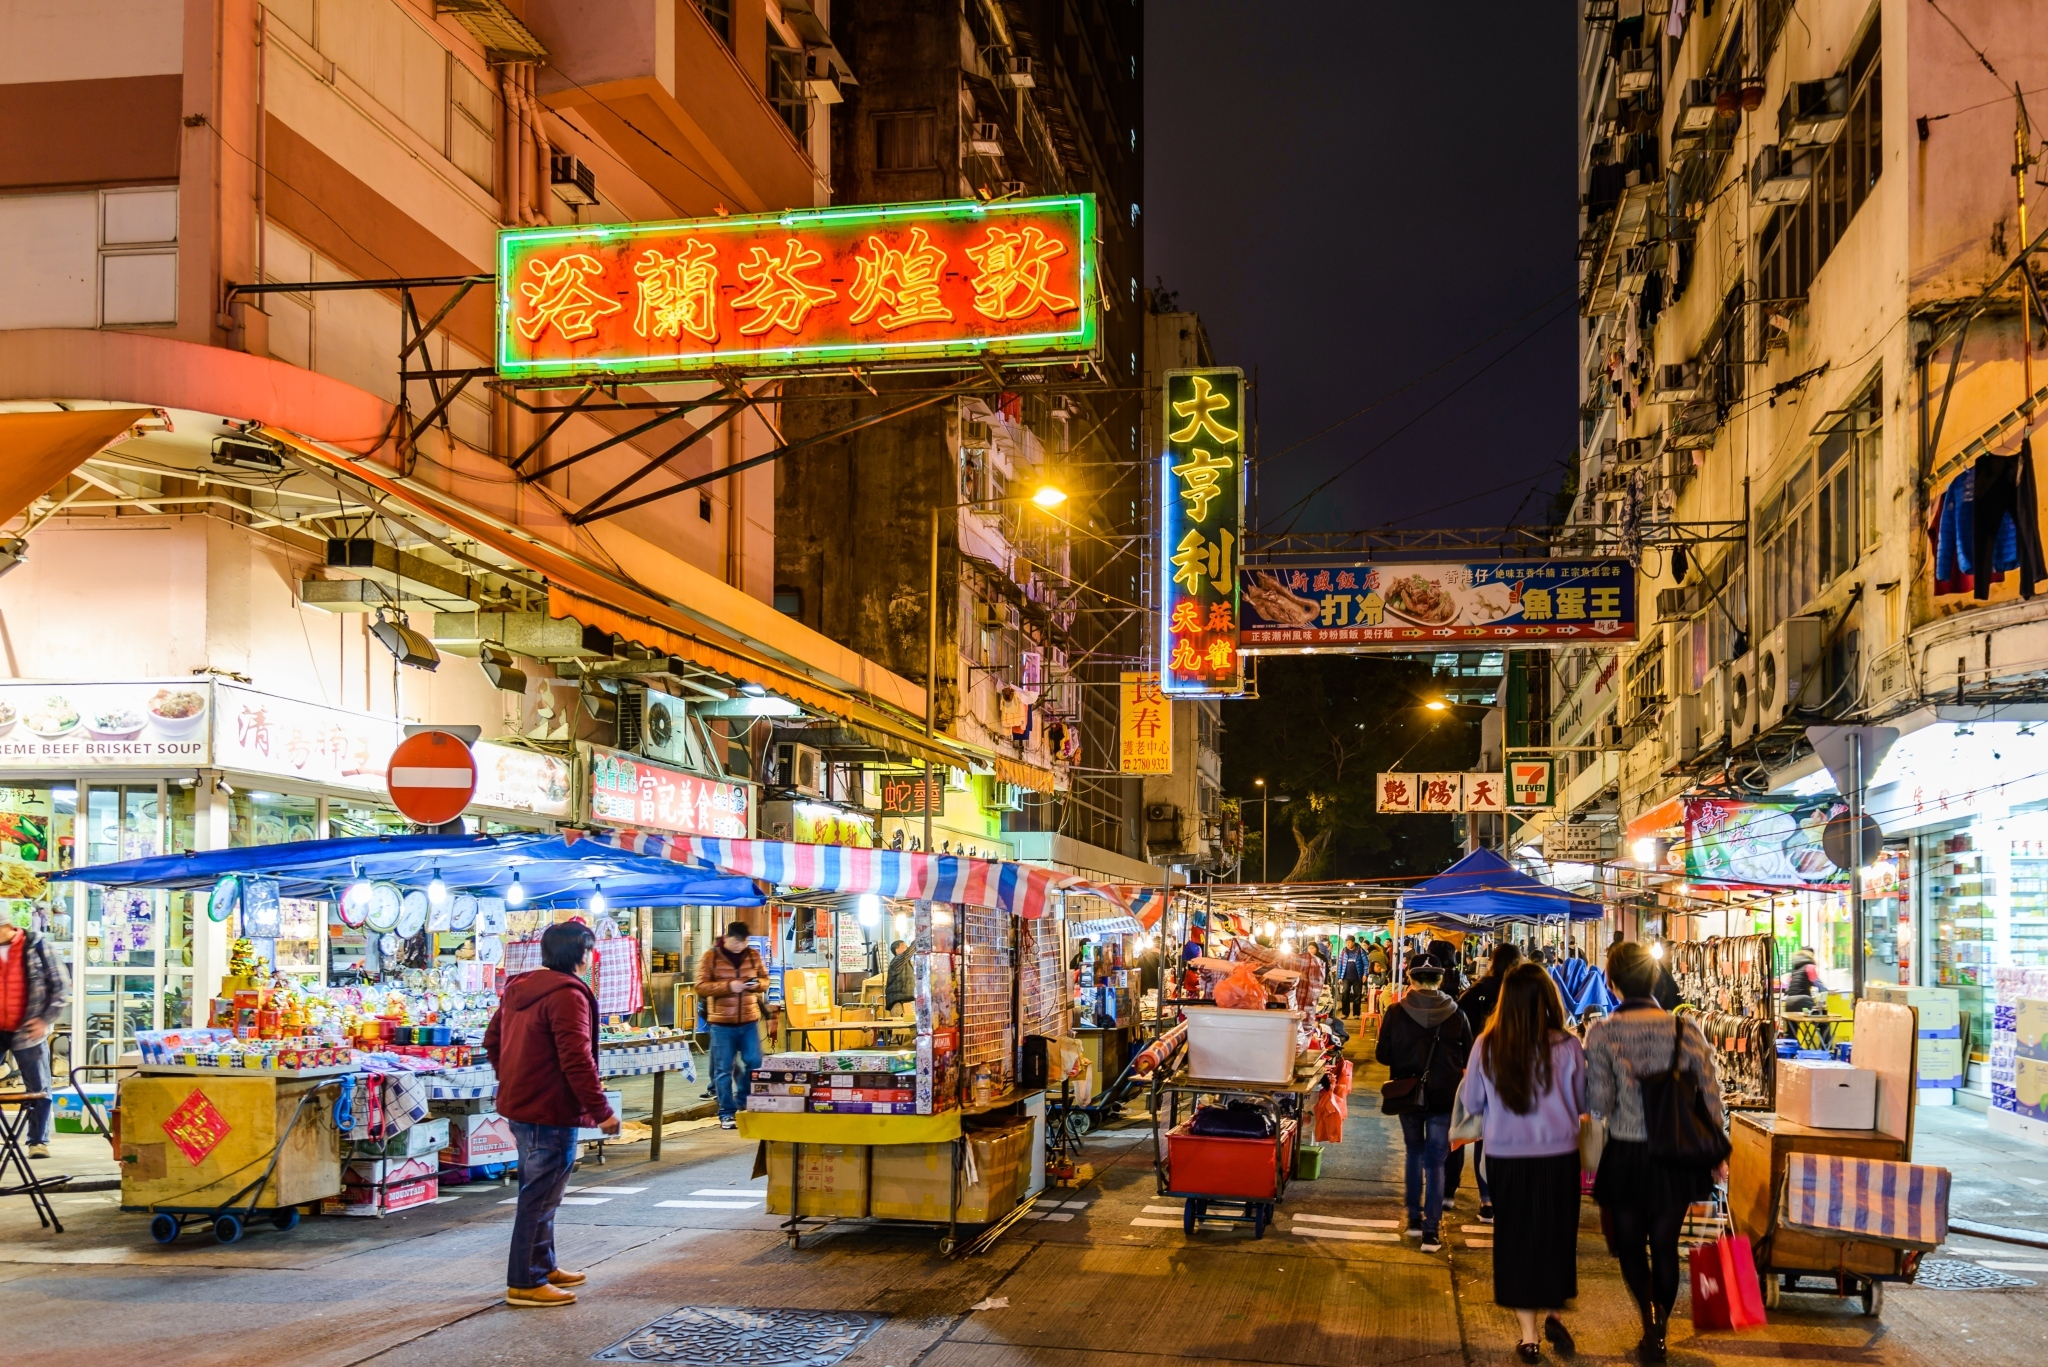 10 places in Hong Kong that define the city's culture and identity